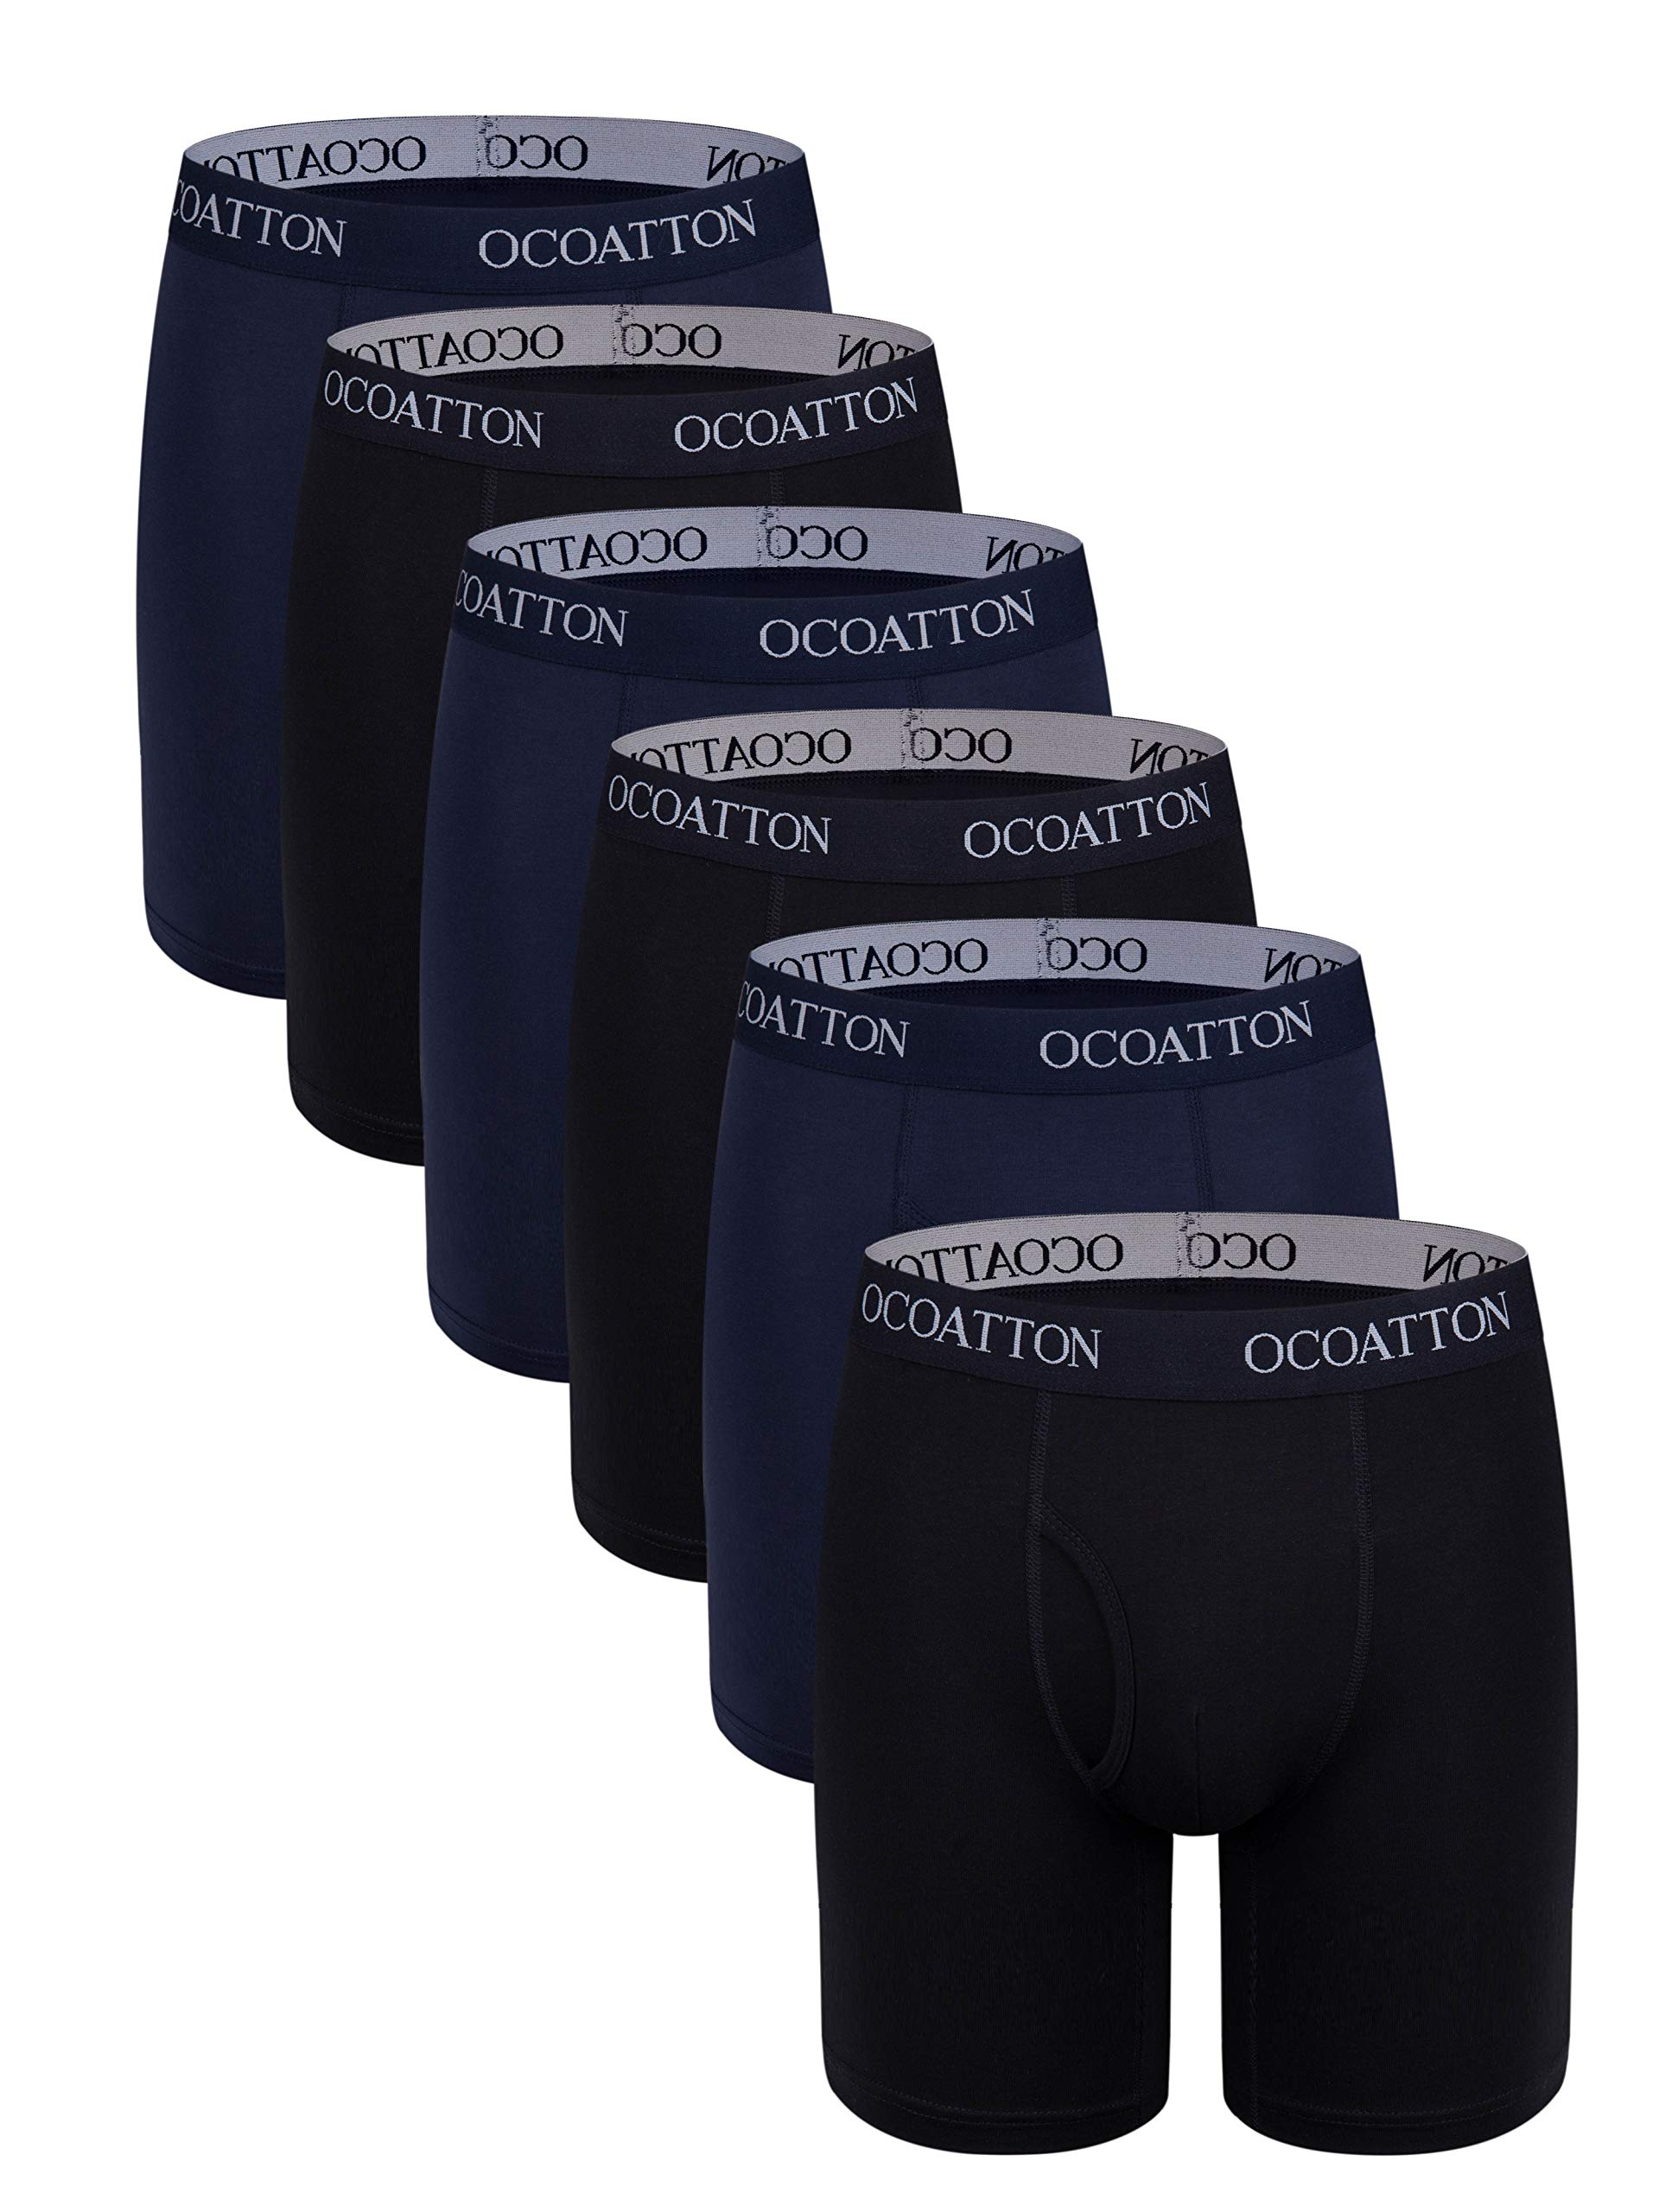 OCOATTON Men's Boxer Briefs Long Leg Big and Tall Combed Cotton Underwear Open Fly 6-Pack (3black/3blue, 5XL) by OCOATTON